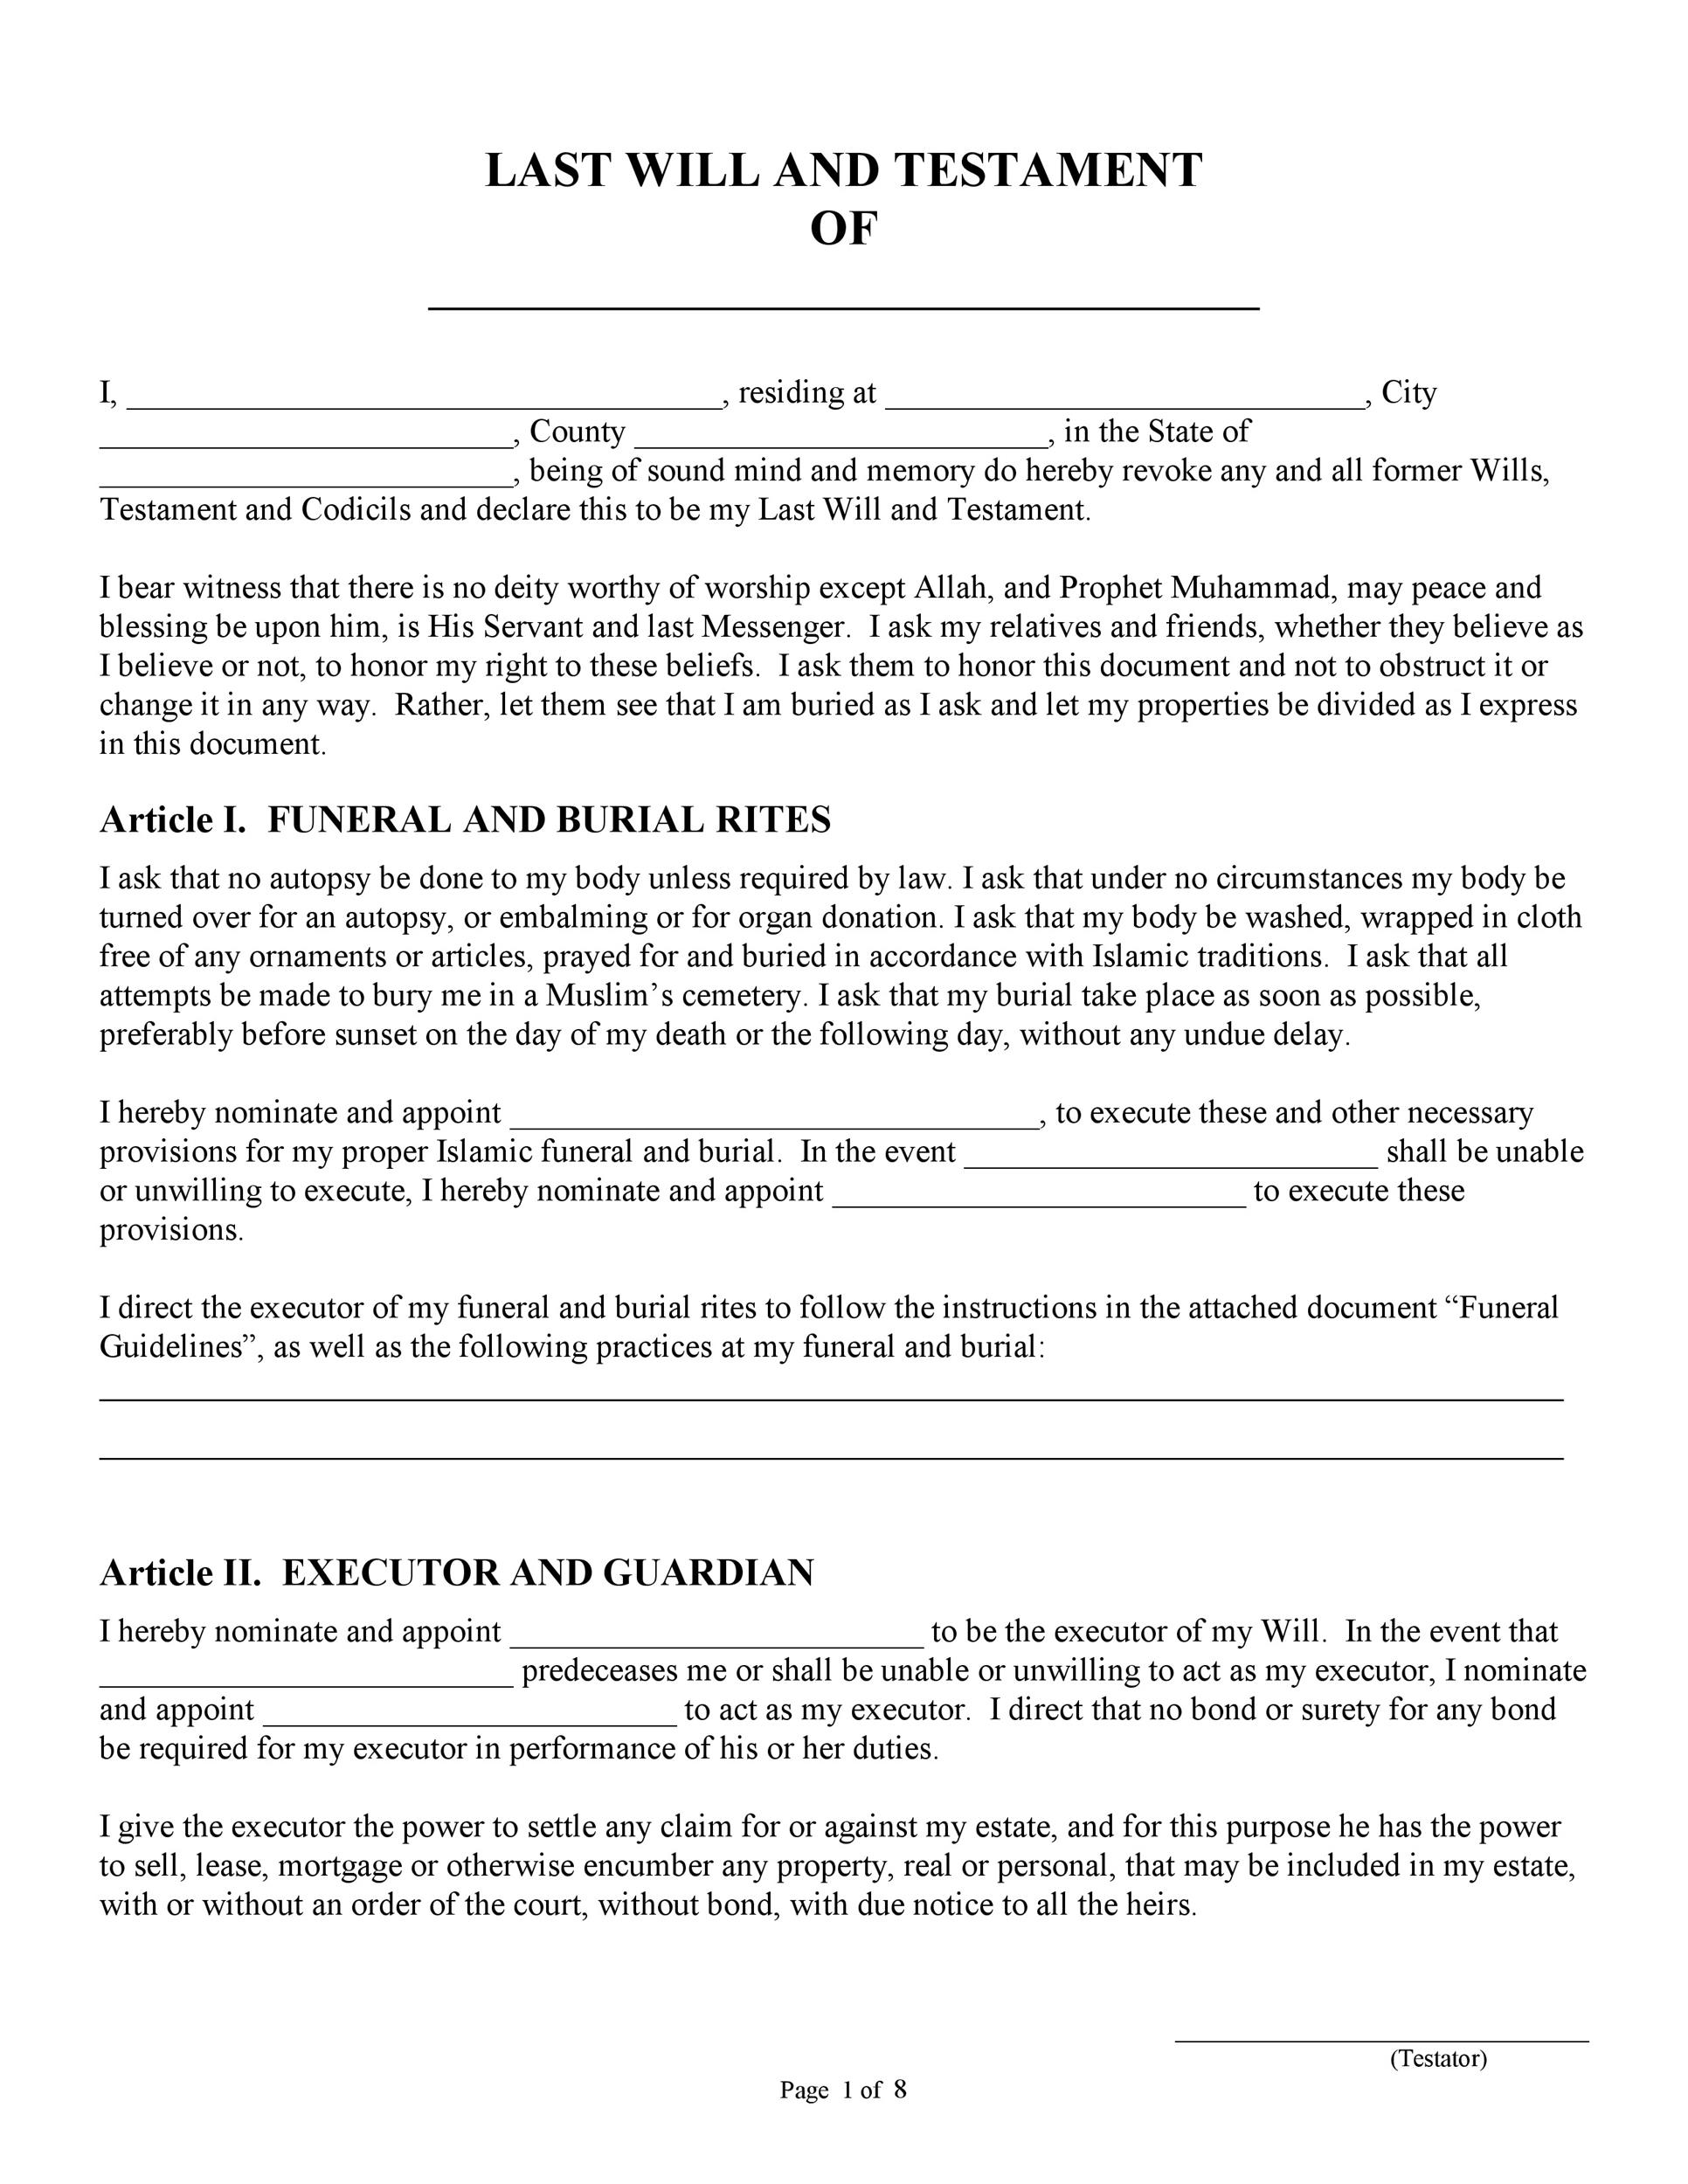 Free Last will and testament template 04